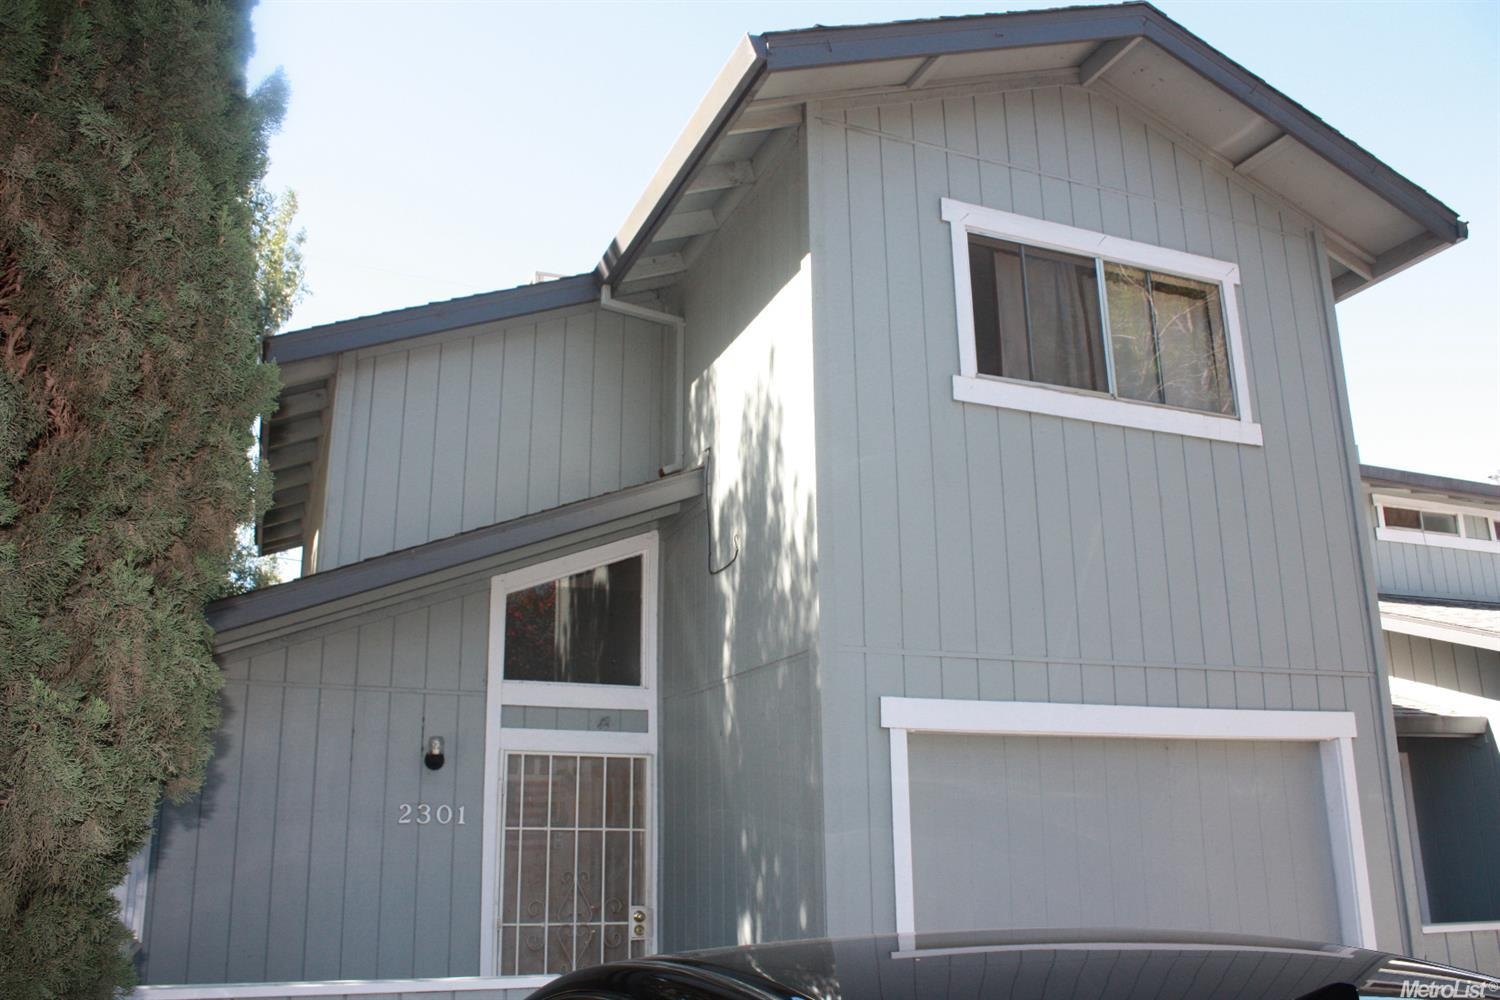 2301 East St, Tracy, CA 95376